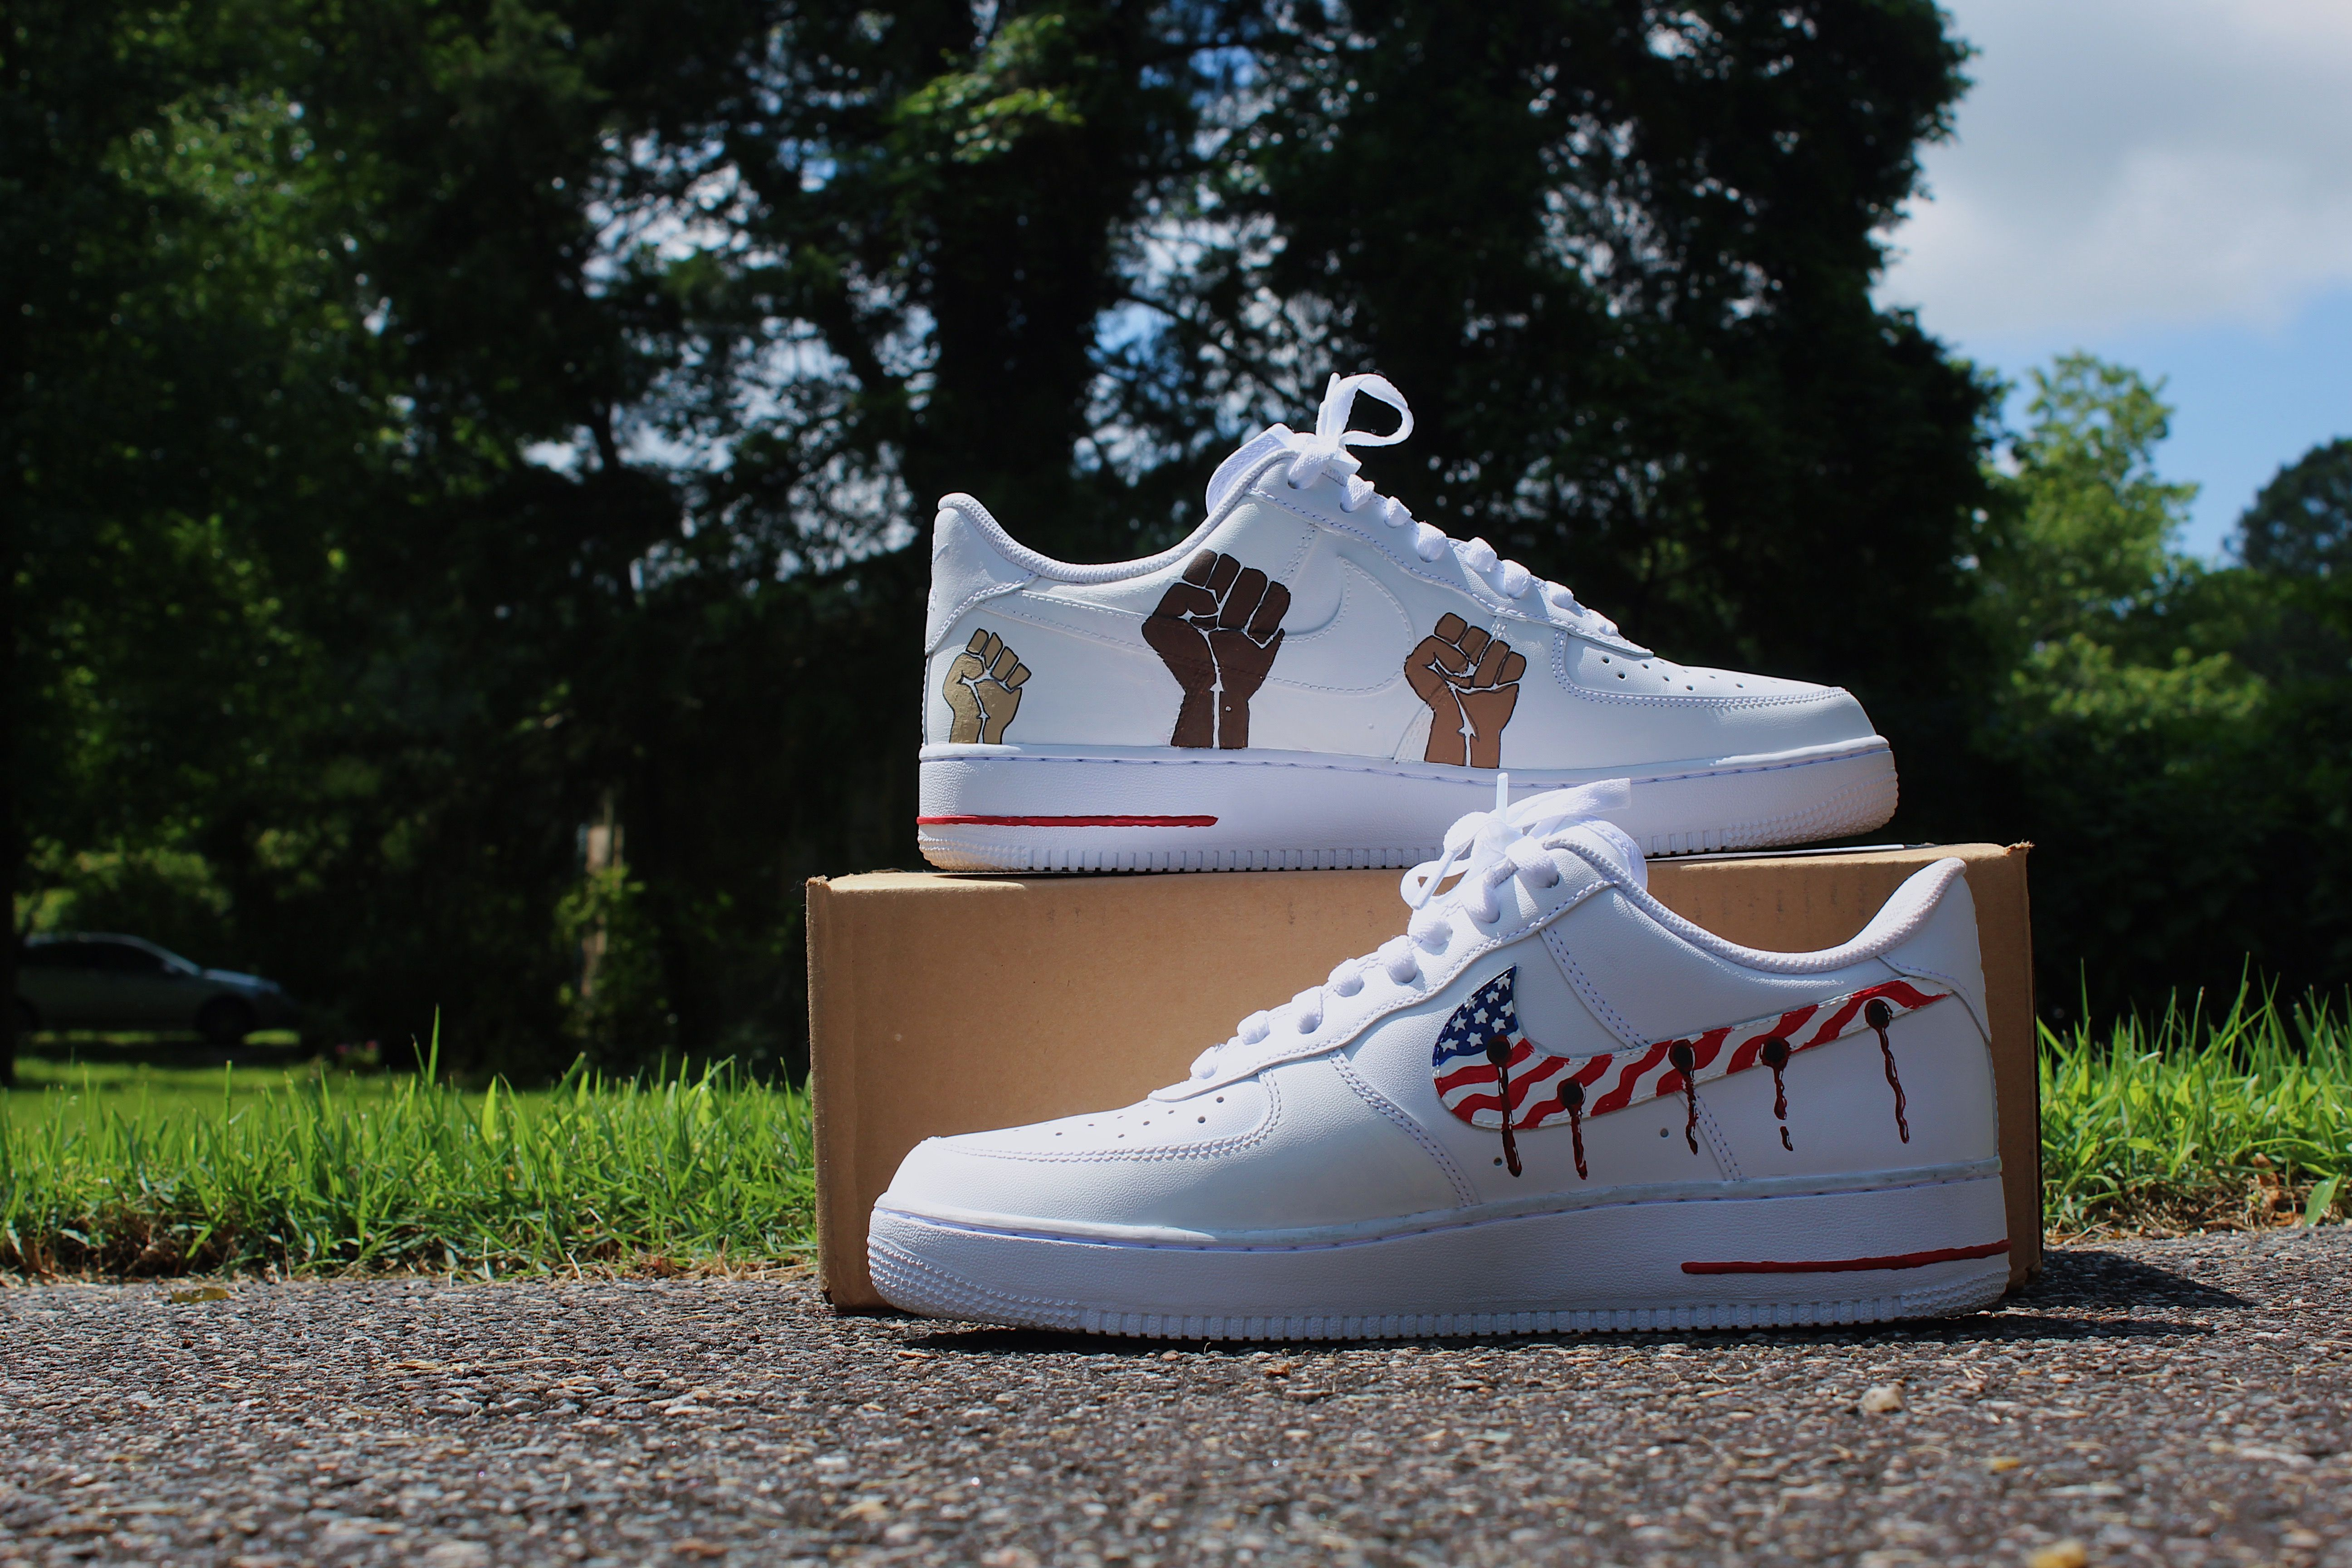 Custom Airforce Ones Shoes Adidas Stan Smith Adidas Stan